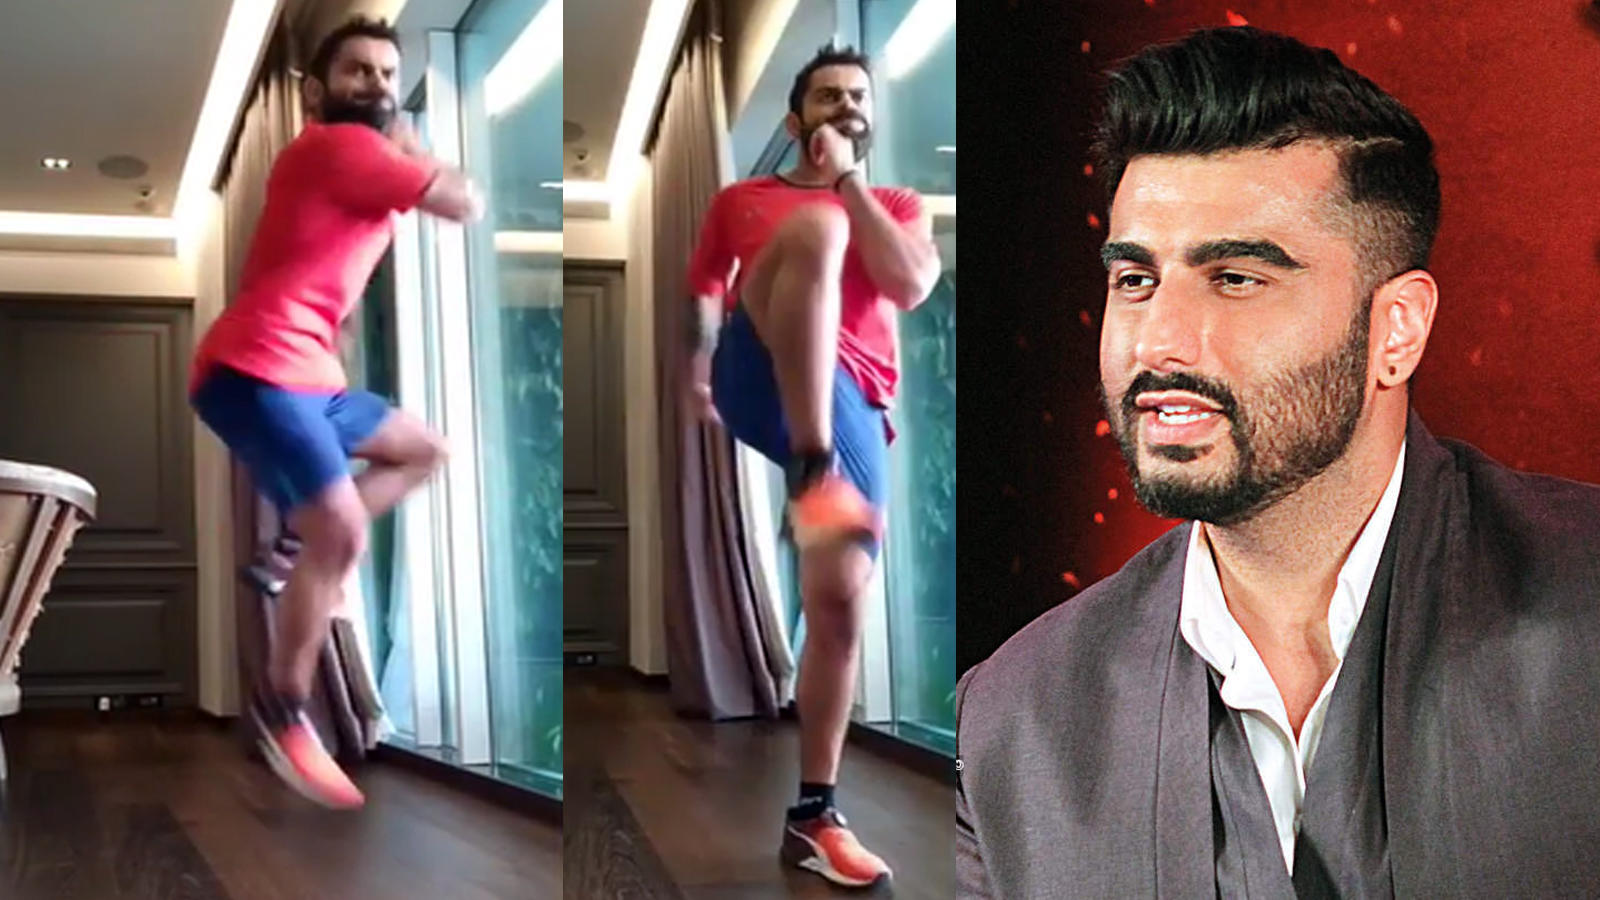 arjun-kapoor-teases-virat-kohli-as-he-attempts-180-degree-landing-compares-his-workout-to-bhangra-leaving-fans-amused